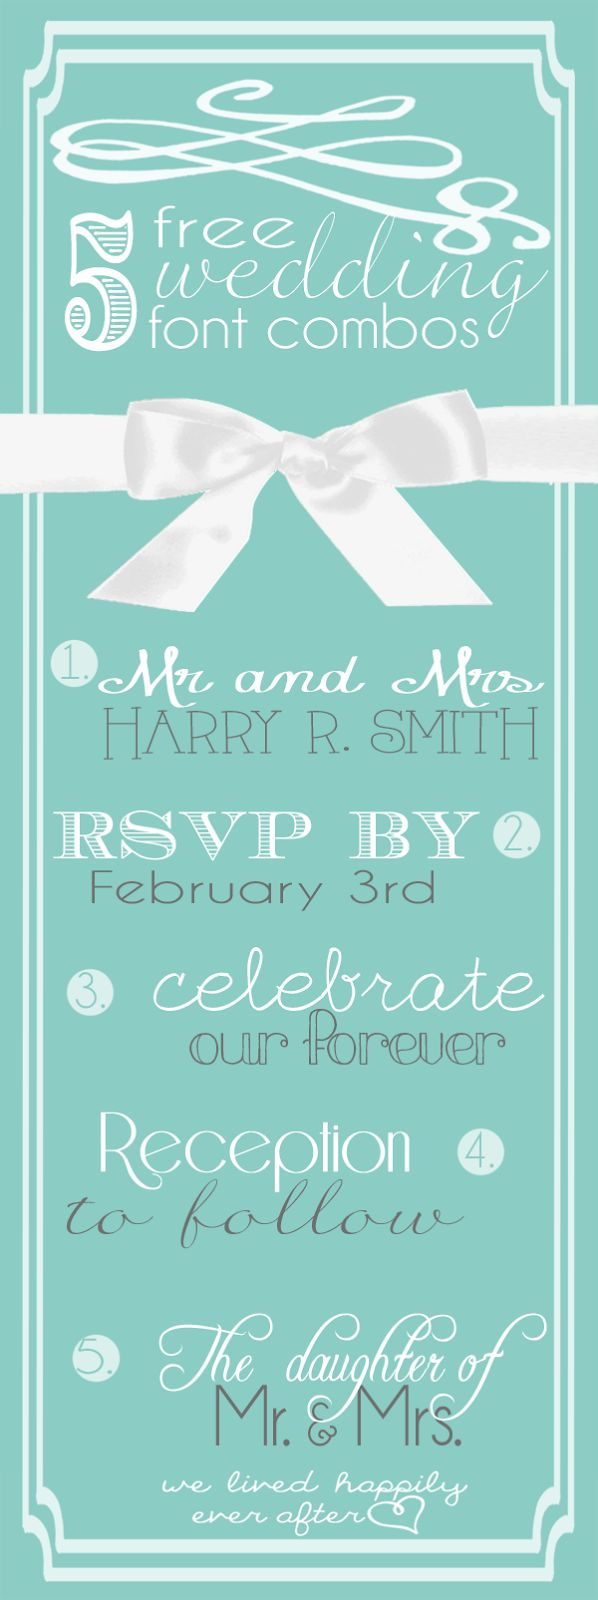 We Lived Happily Ever After: 5 Lovely And Free Wedding Font Combinations